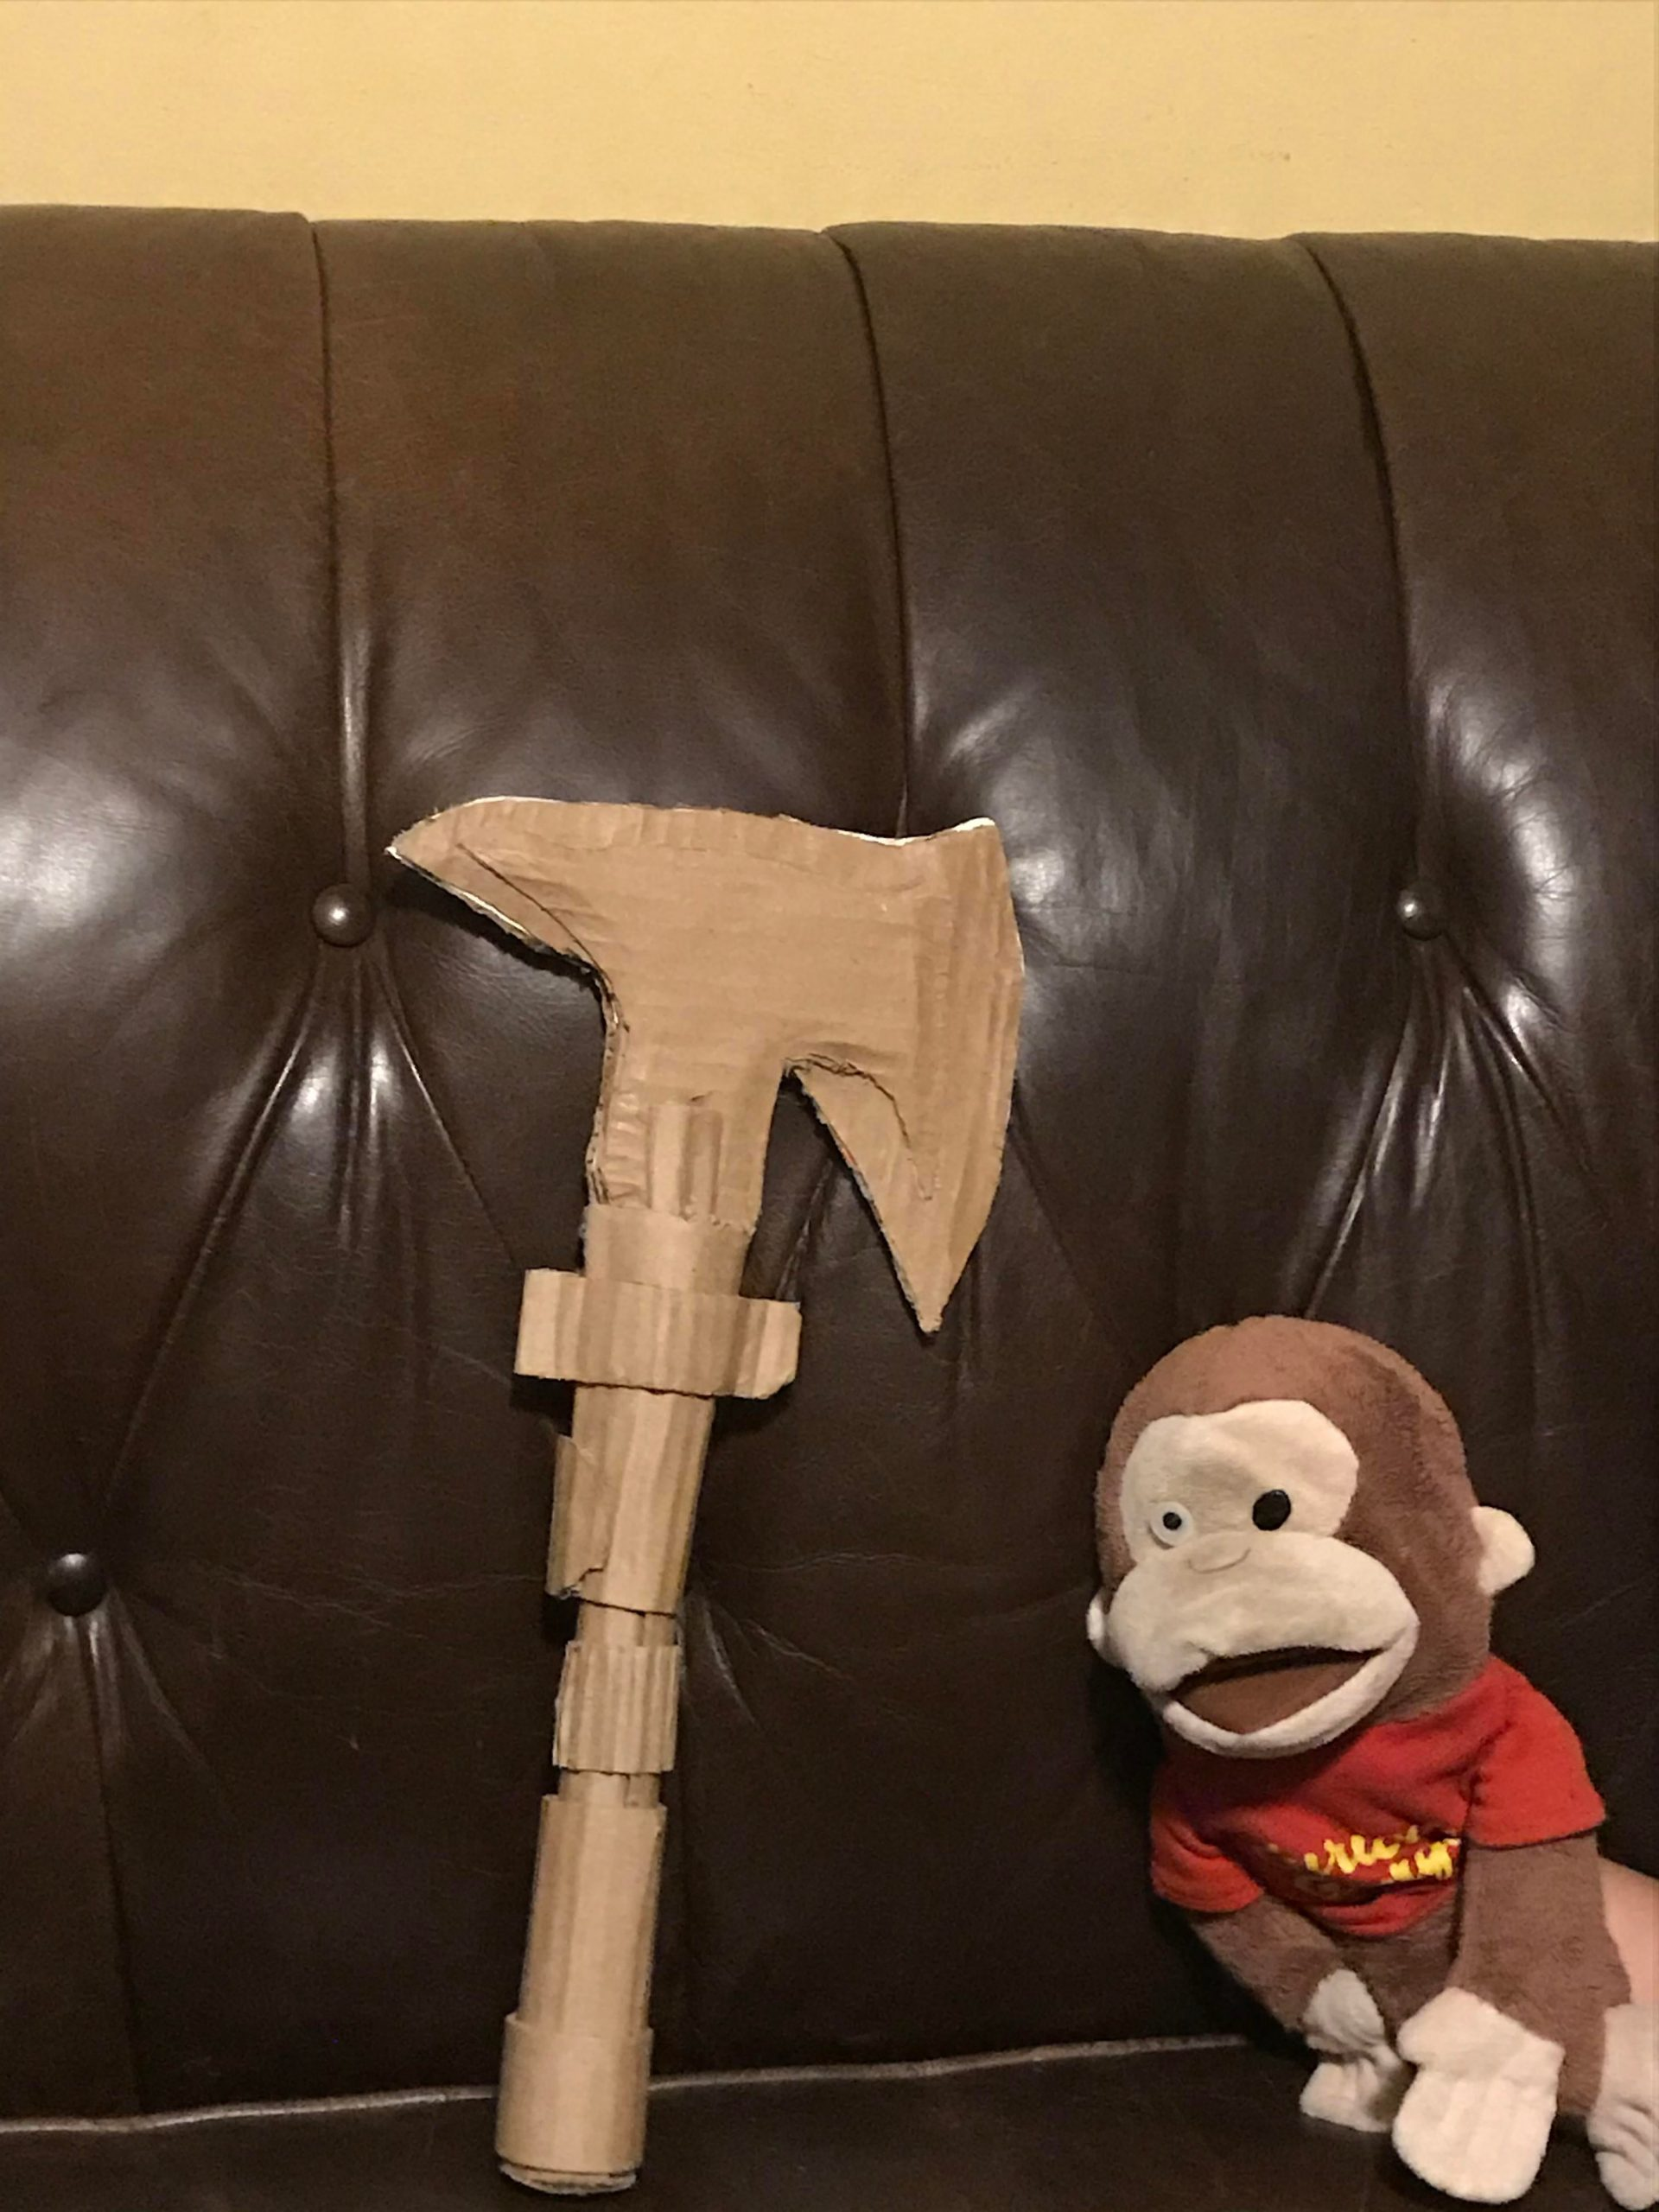 5v3t7k2ouoe51 scaled - CARDBOARD AXE I MADE, PLZ EXCUSE THE MONKEY - hobbies, crafts